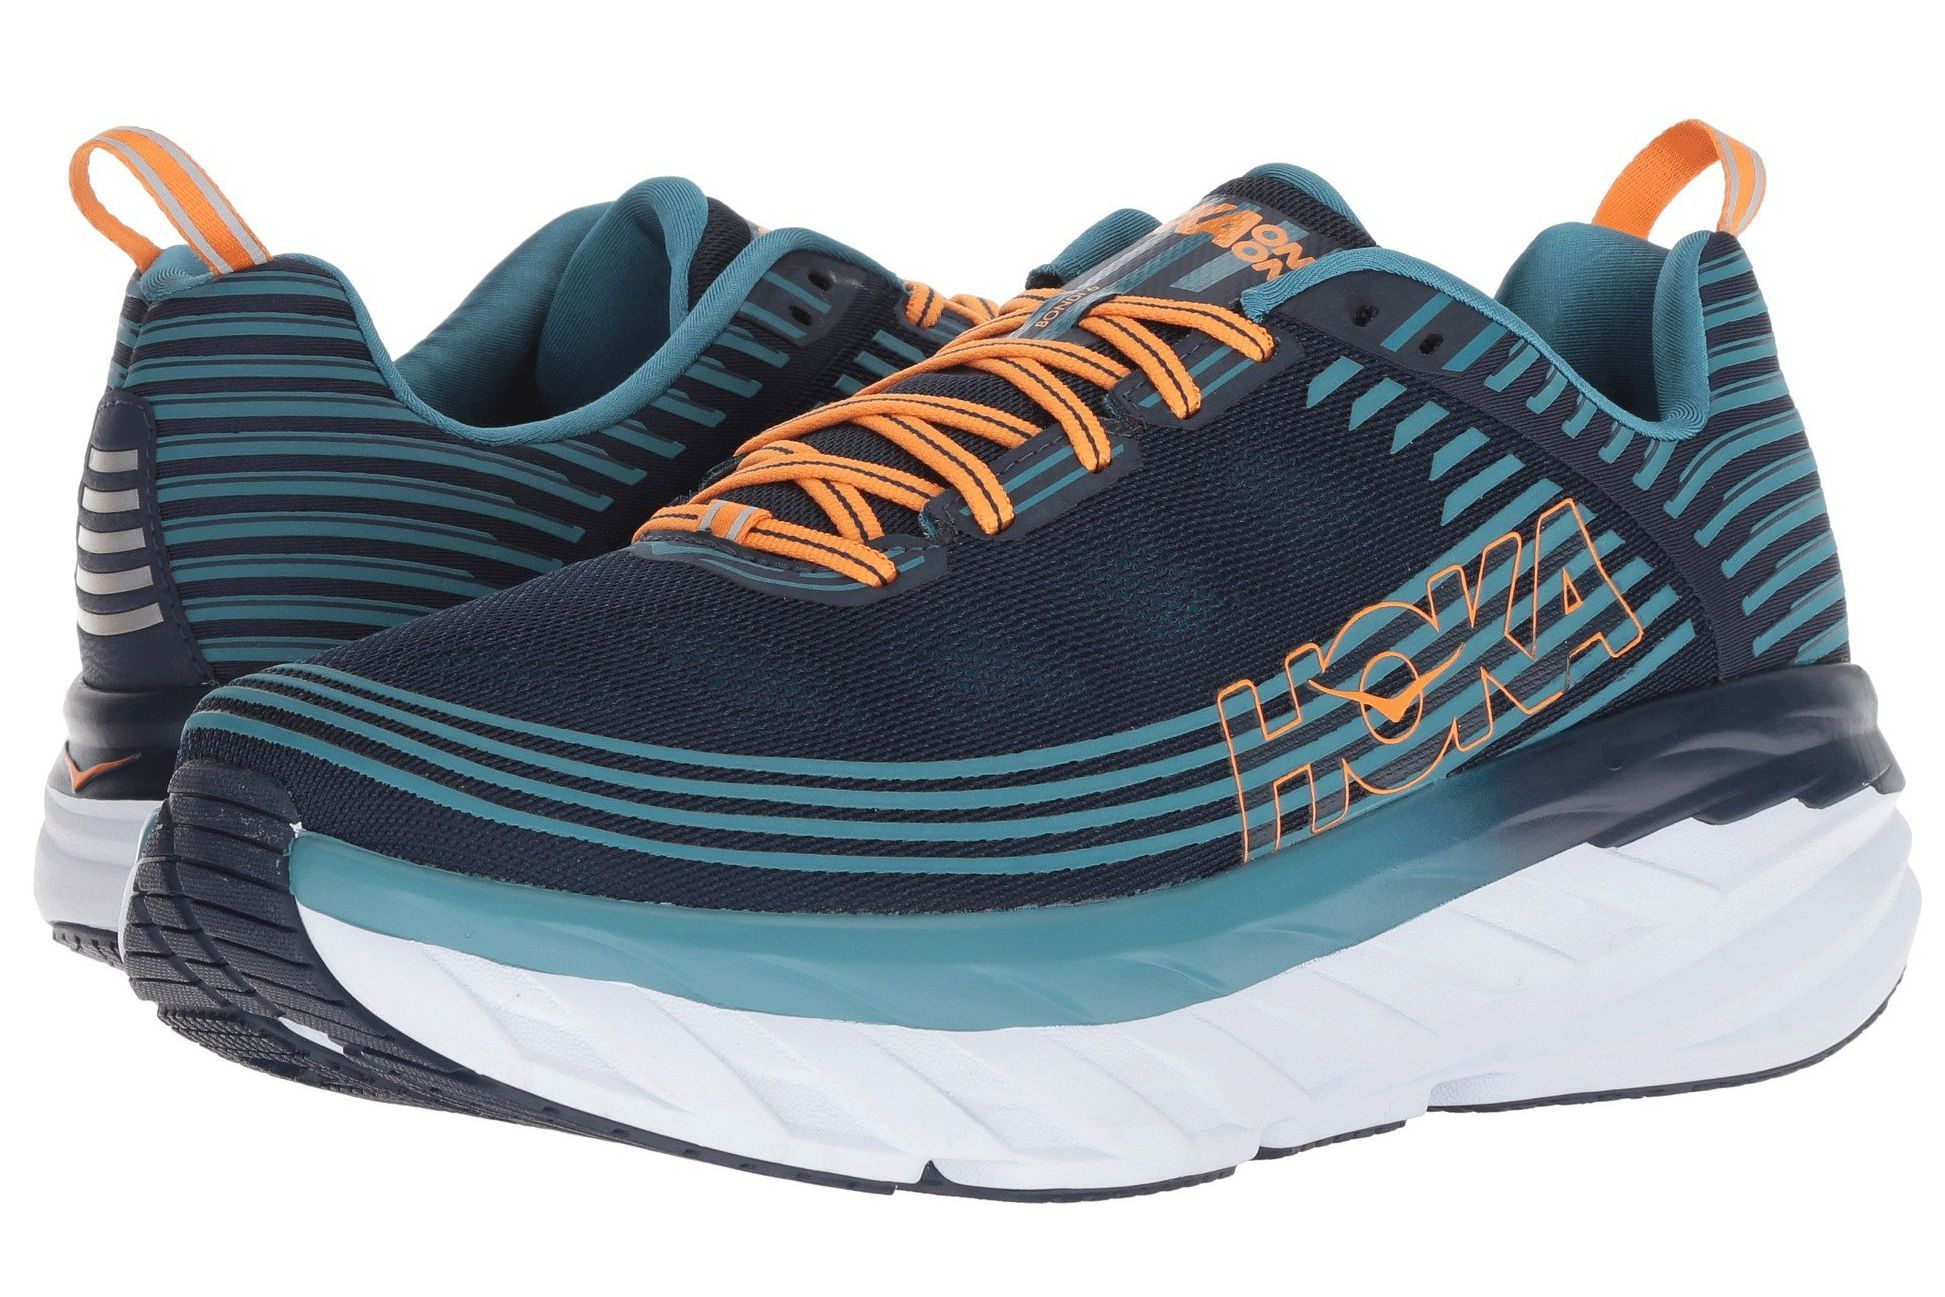 37aa807d02 13 Best Running Sneakers For Men - Stylish Running Sneakers